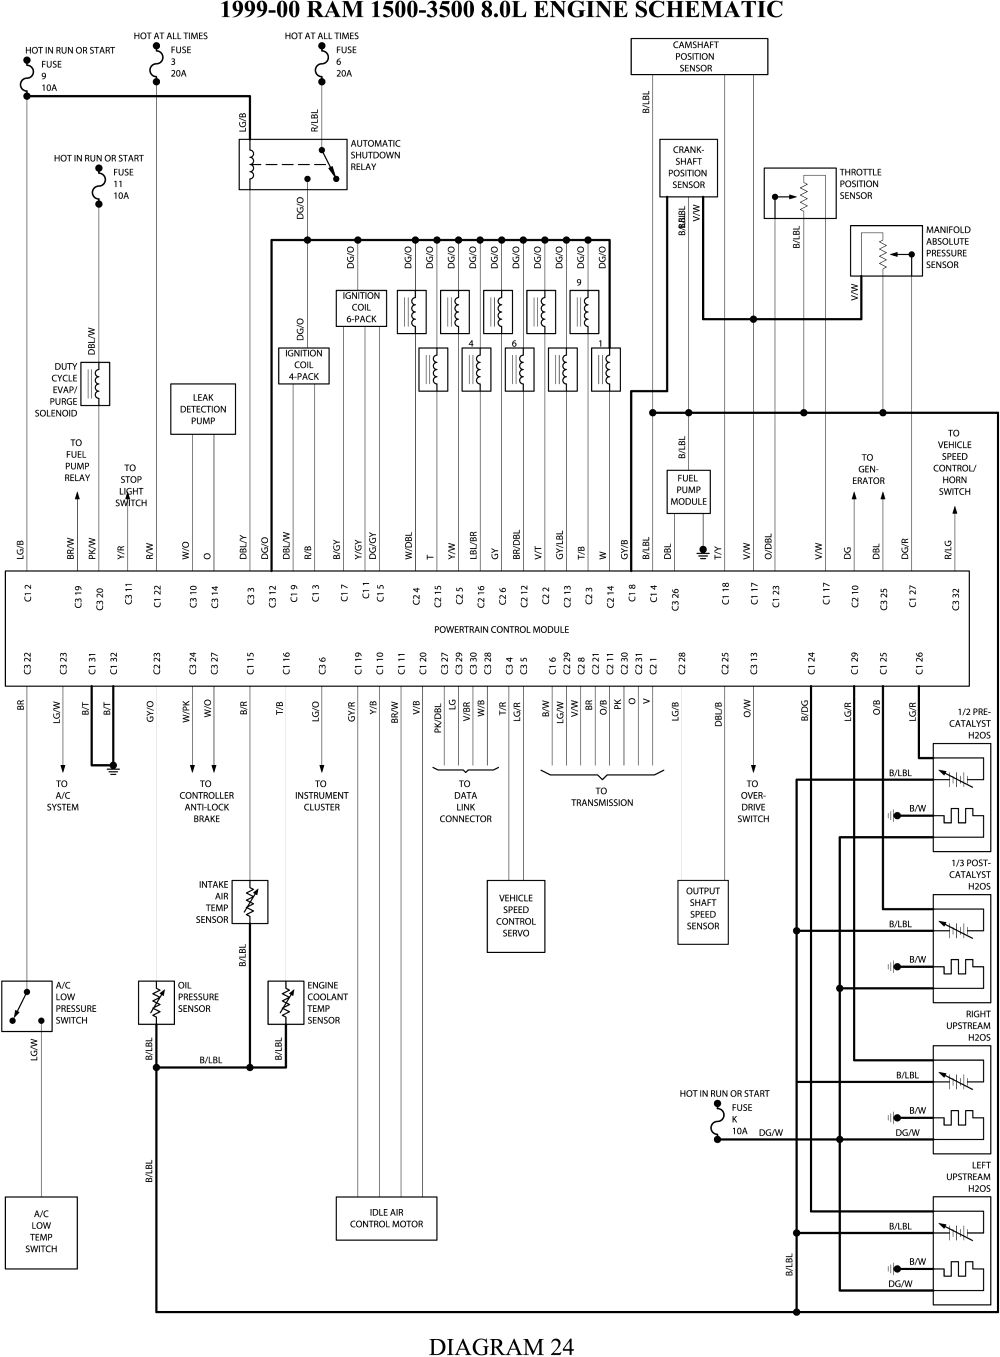 2002 Dodge Ram 1500 Wiring Diagram | Free Wiring Diagram in 2020 | Dodge  ram 1500, Dodge ram, 2001 dodge ram 1500Pinterest